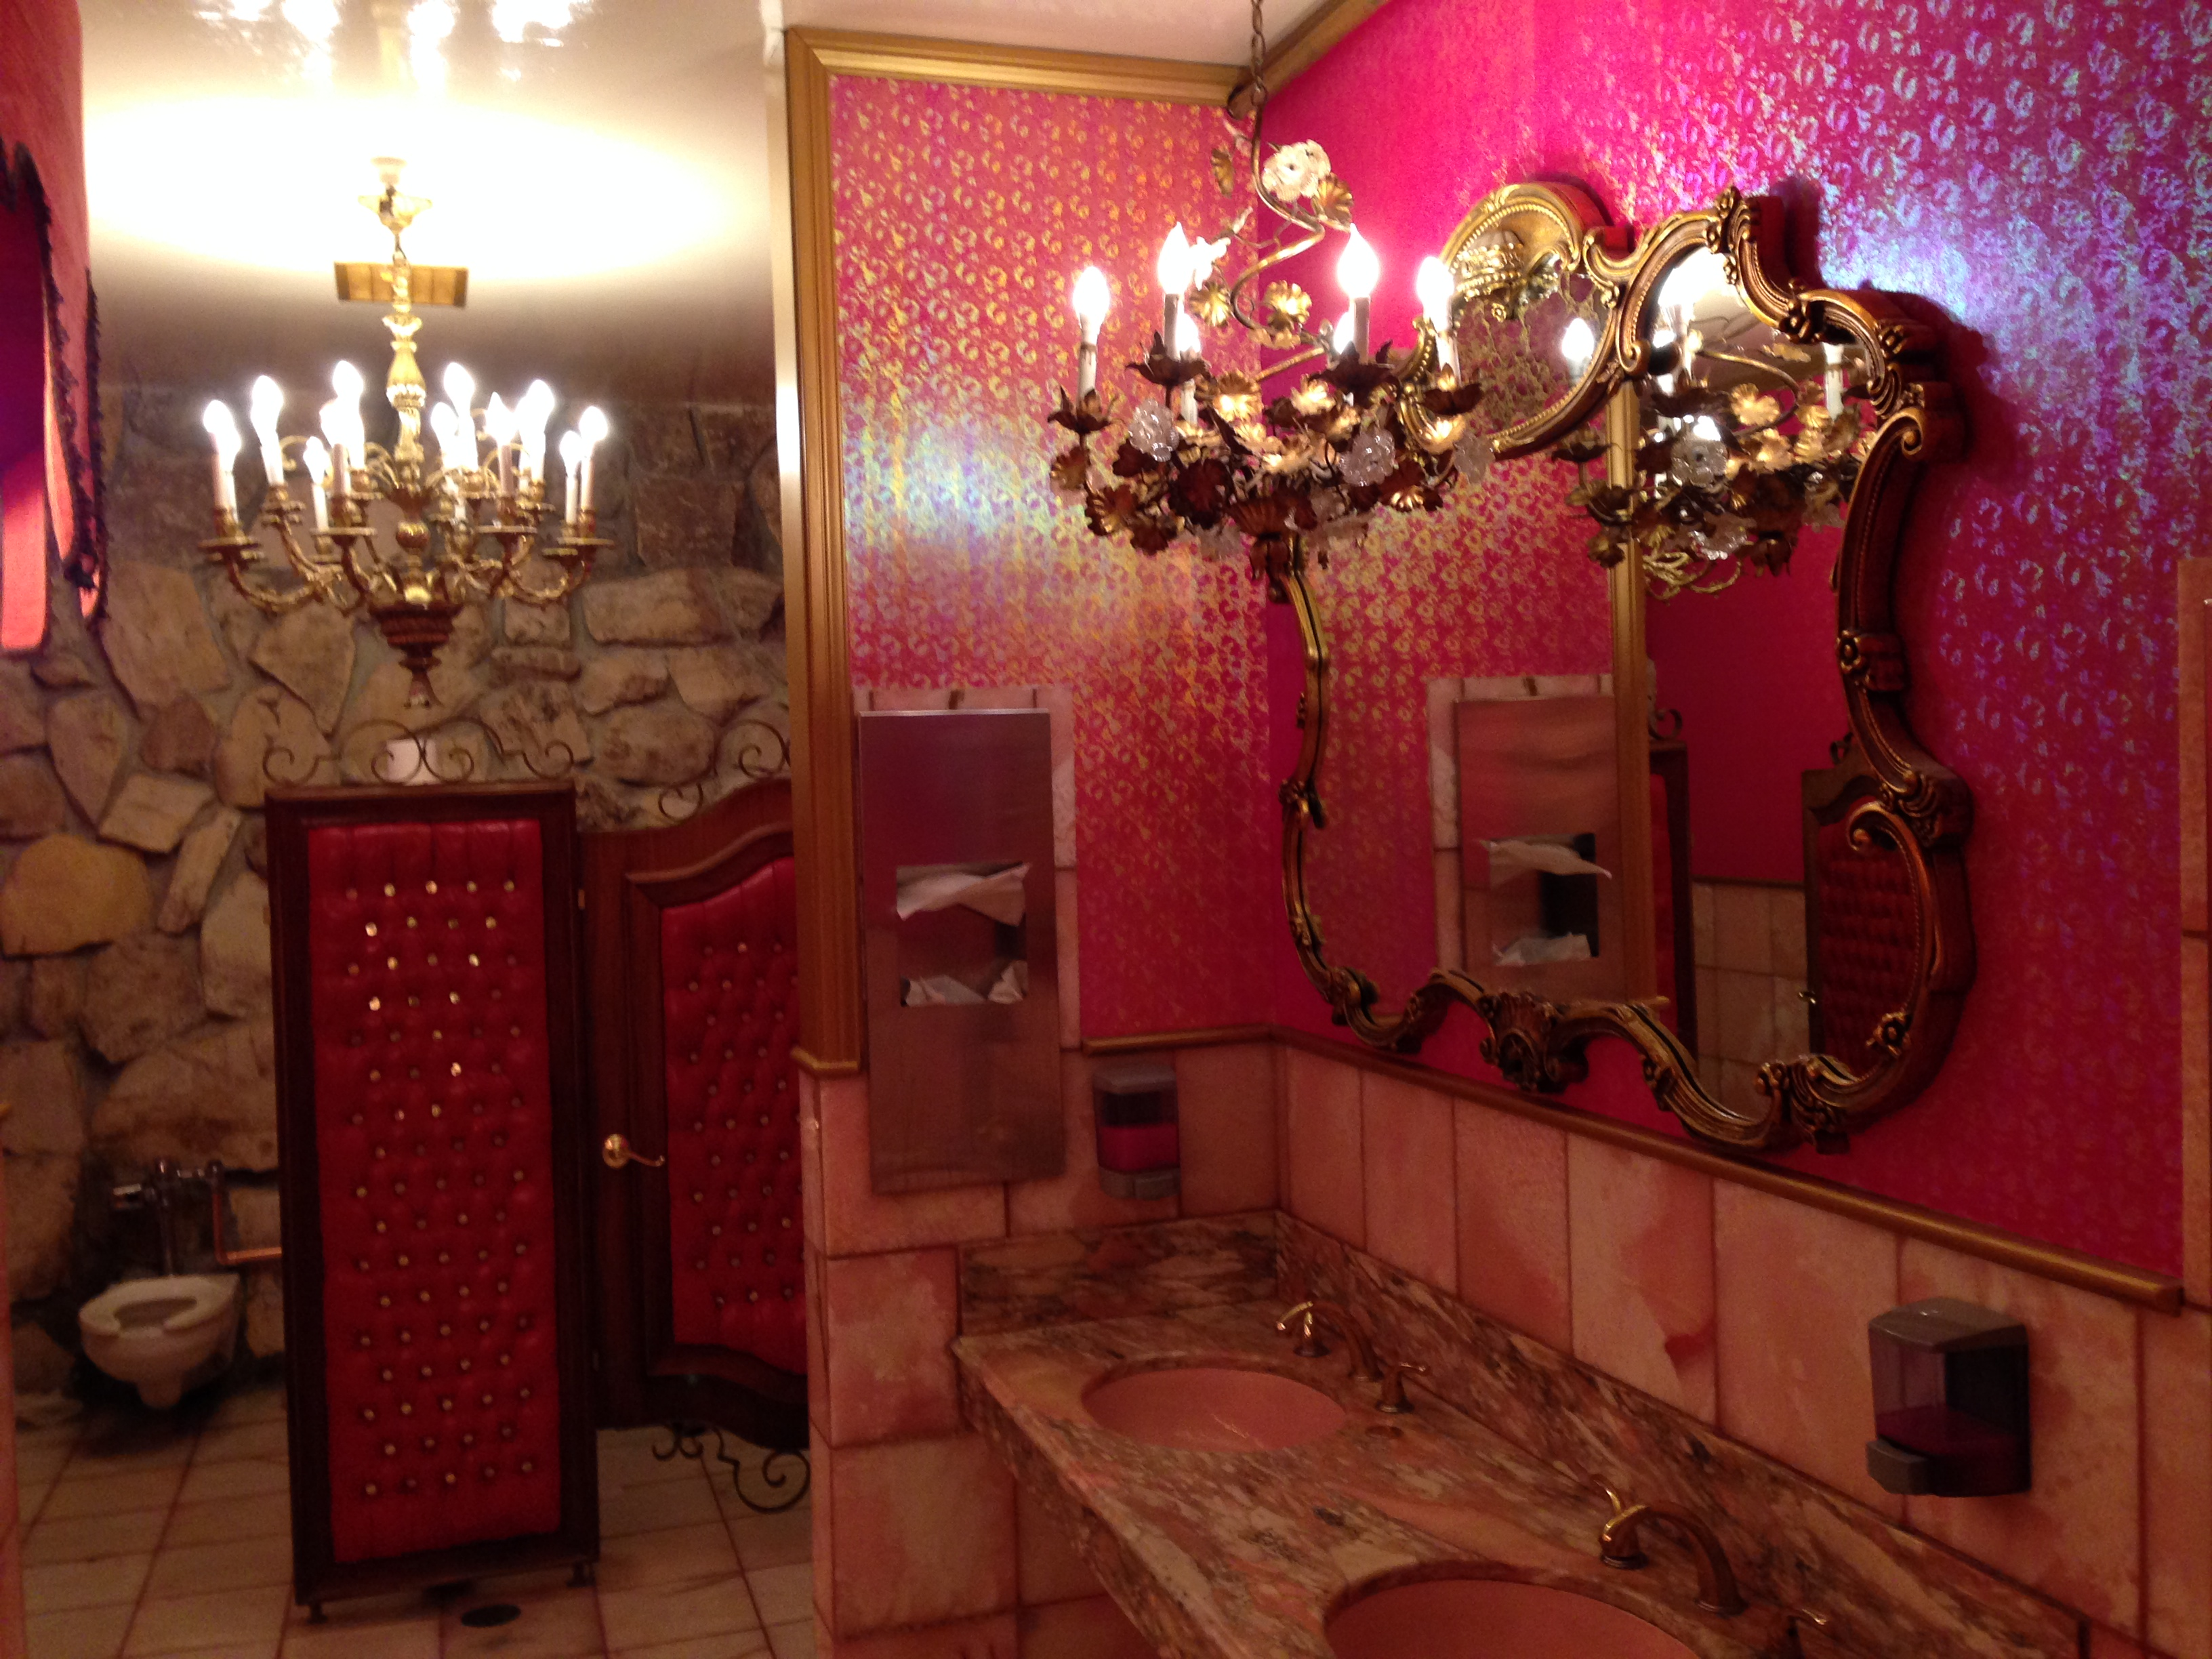 The women's bathroom was done to the exacting specifications of ... Liberace?